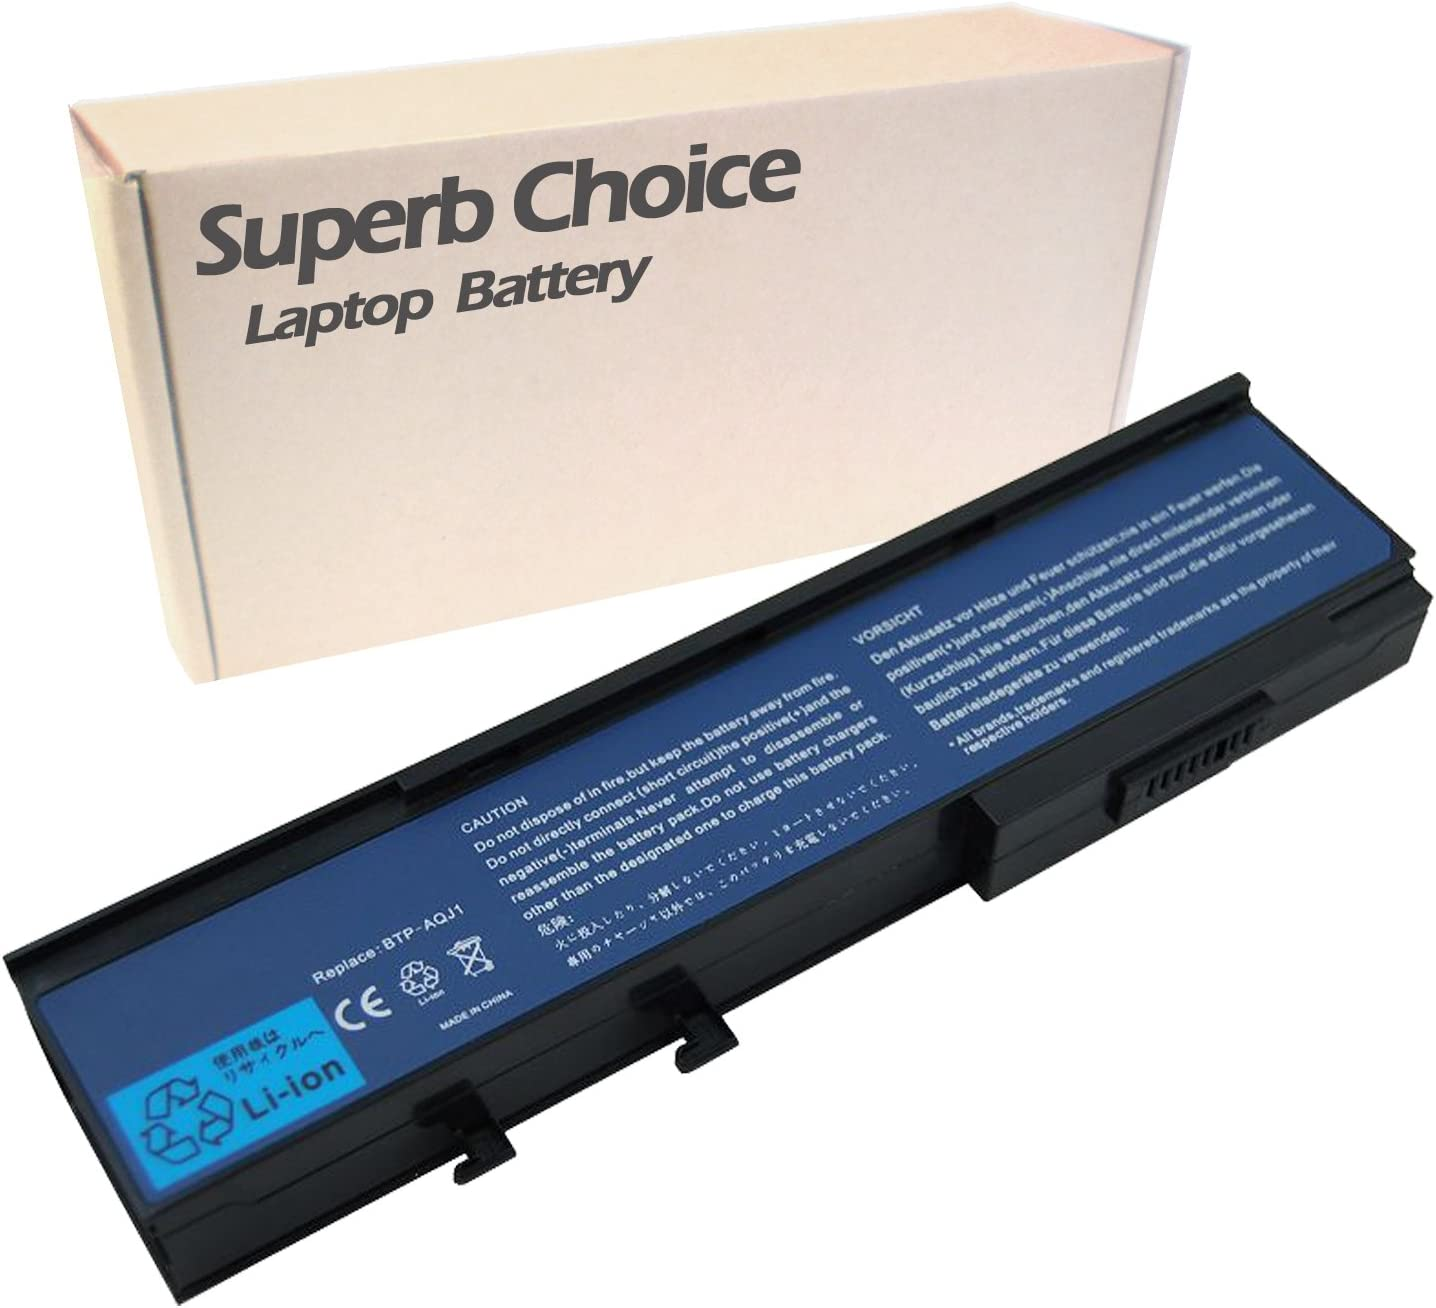 Superb Choice Battery Compatible with ACER Extensa 4420-5239